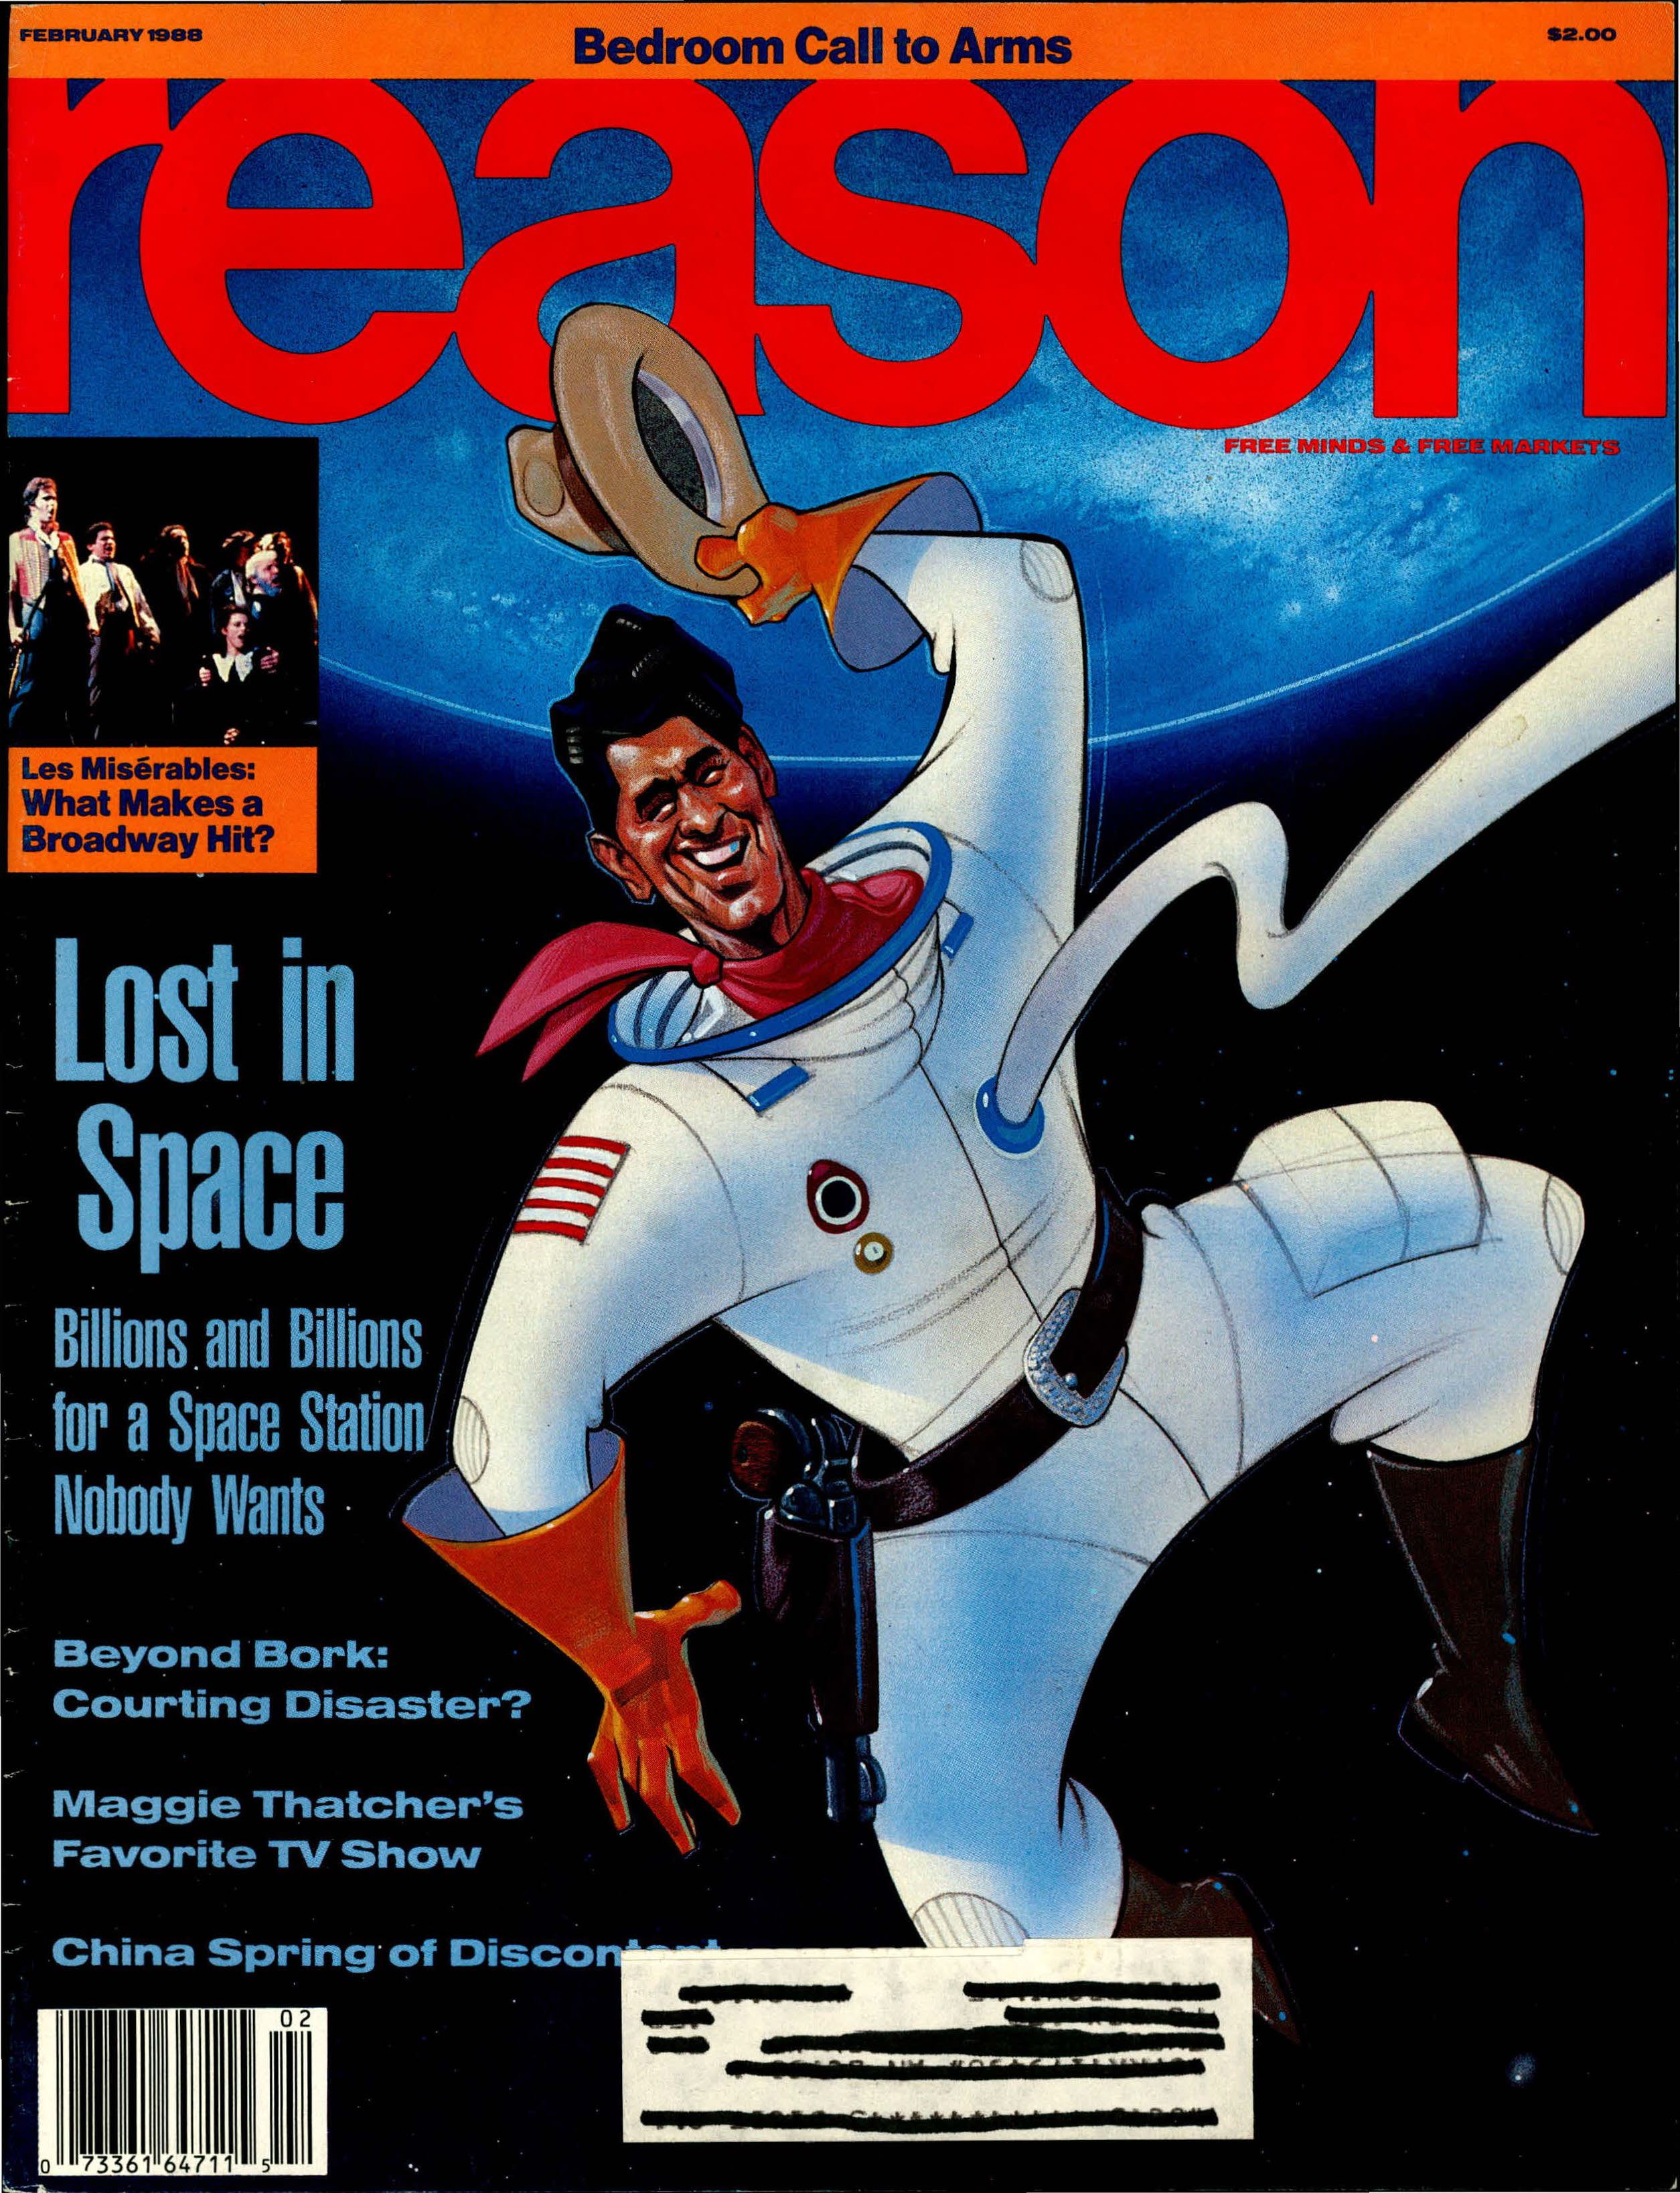 Reason Magazine, February 1988 cover image